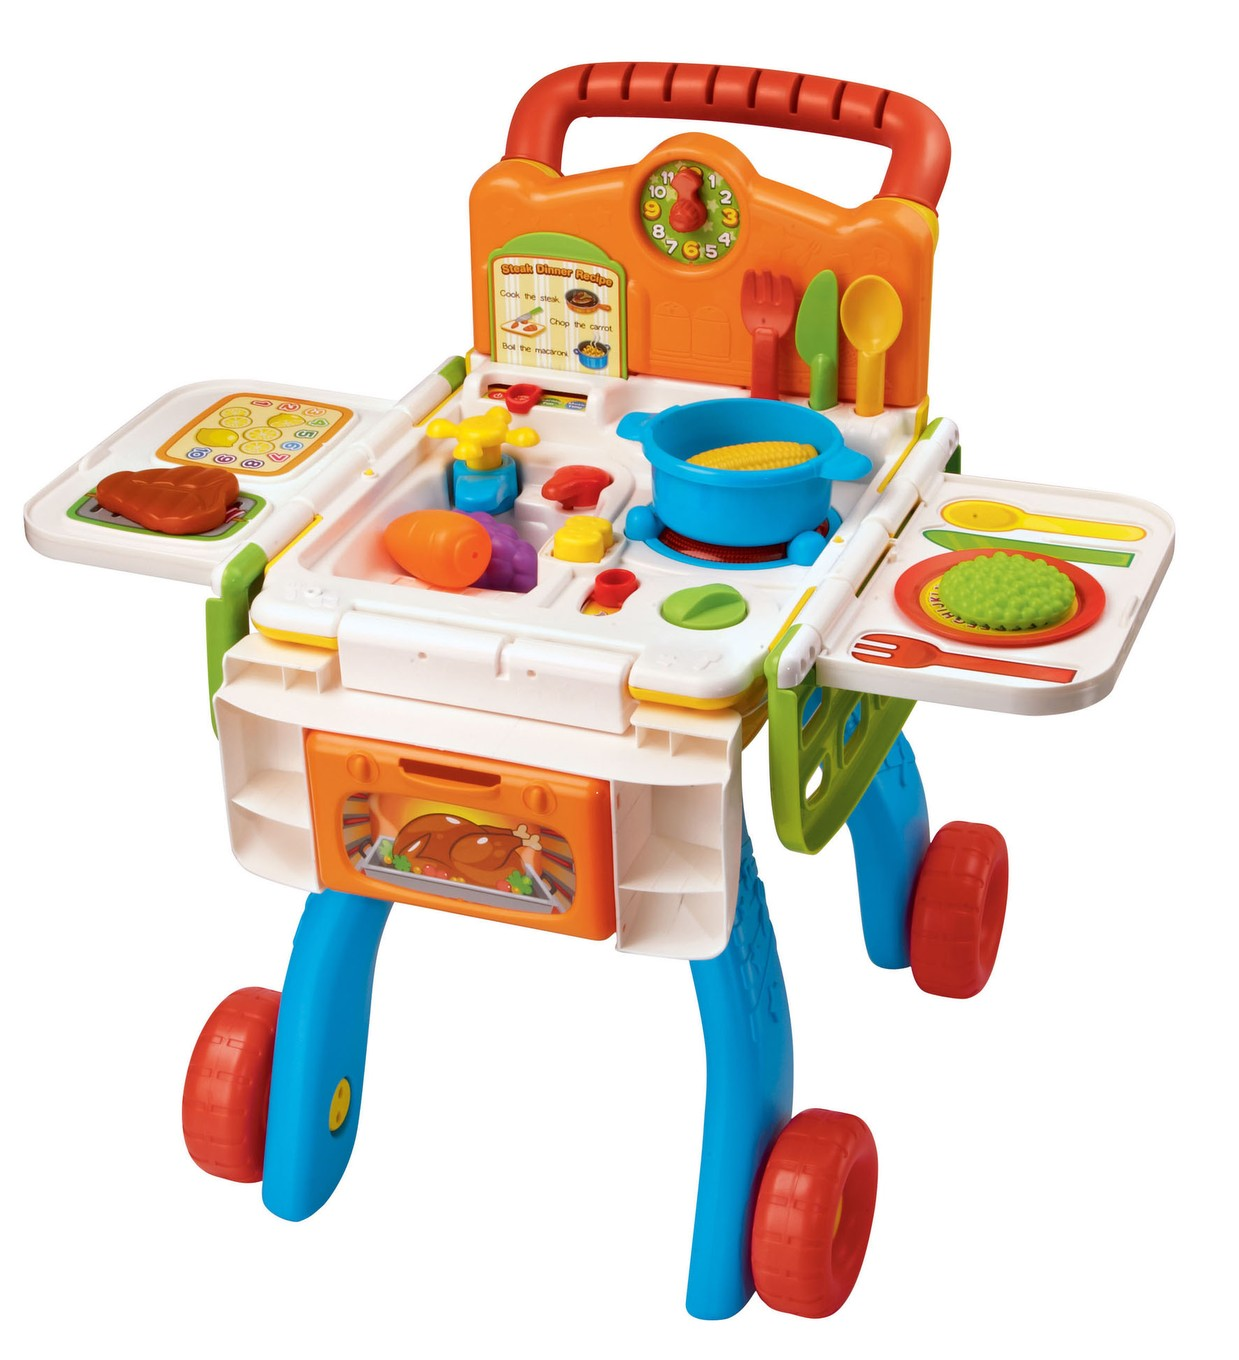 2 in 1 shop cook playset for Kitchen set for 2 year old boy